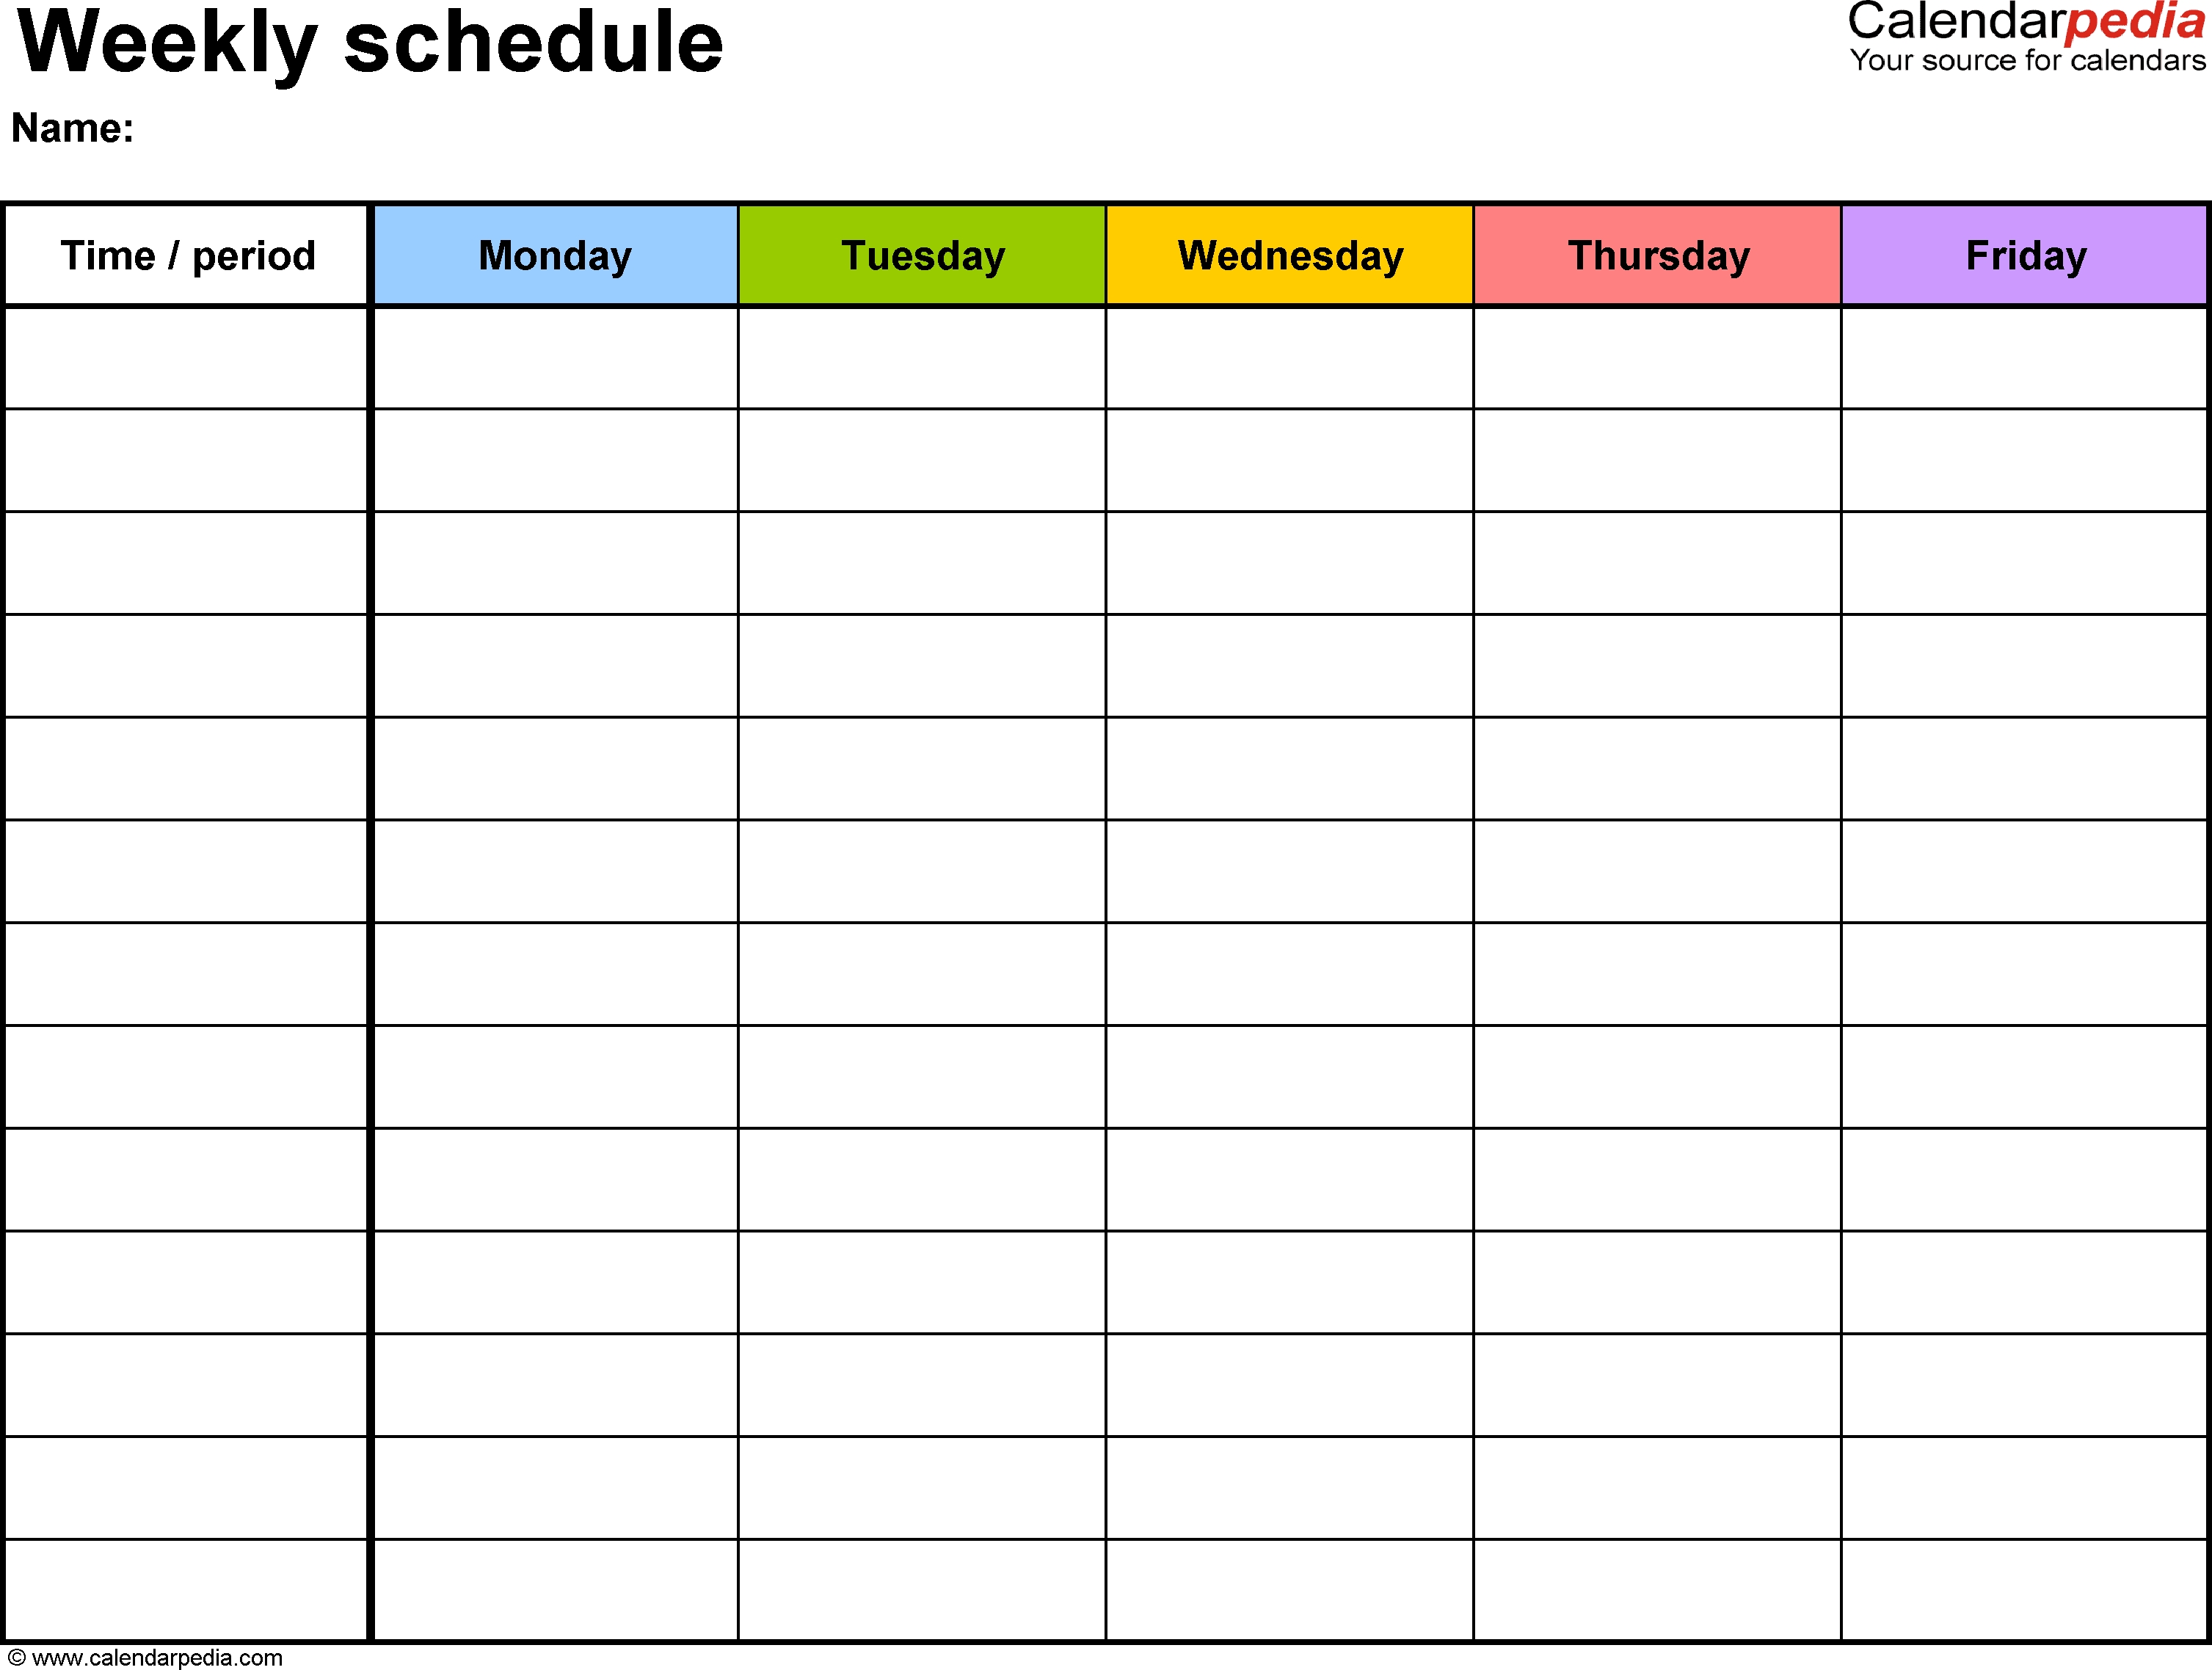 Free Weekly Schedule Templates For Word - 18 Templates for Monday Through Friday Calendar Template